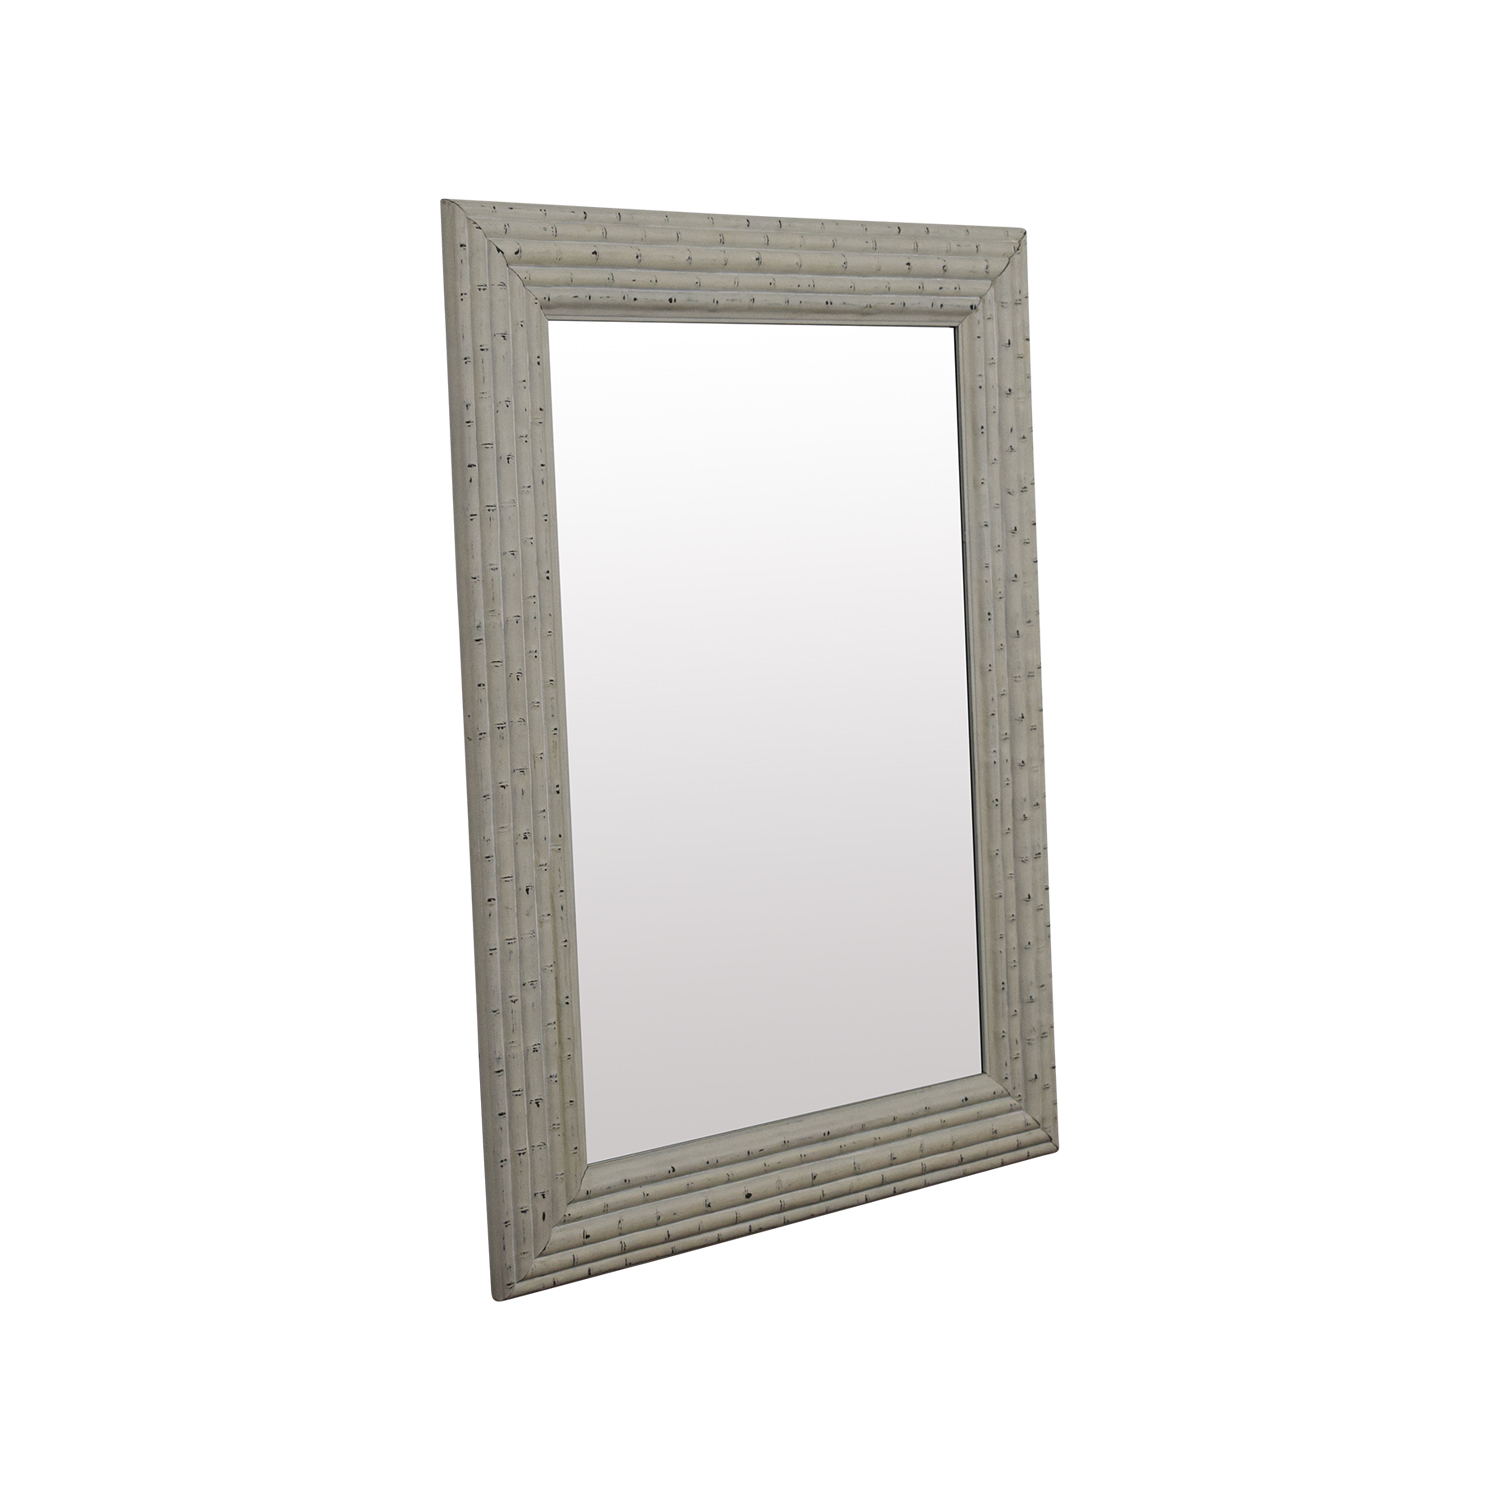 shop HomeGoods Large White Bamboo Mirror HomeGoods